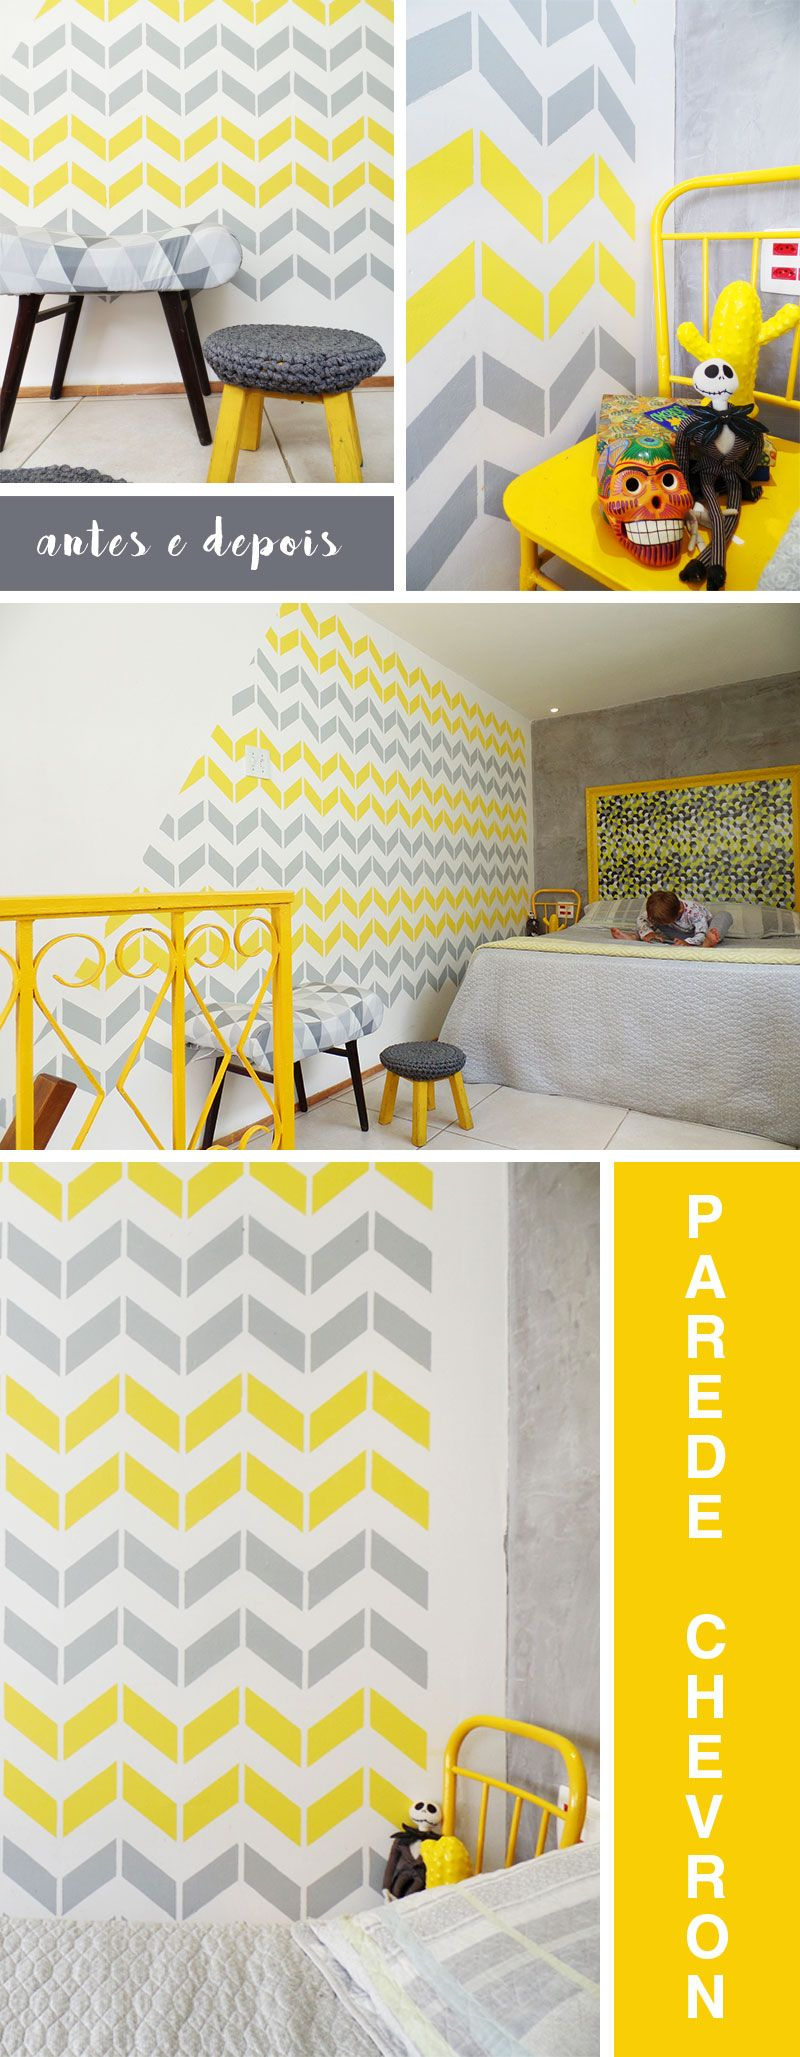 Minha Parede Chevron | Stenciling, Walls and Wall ideas